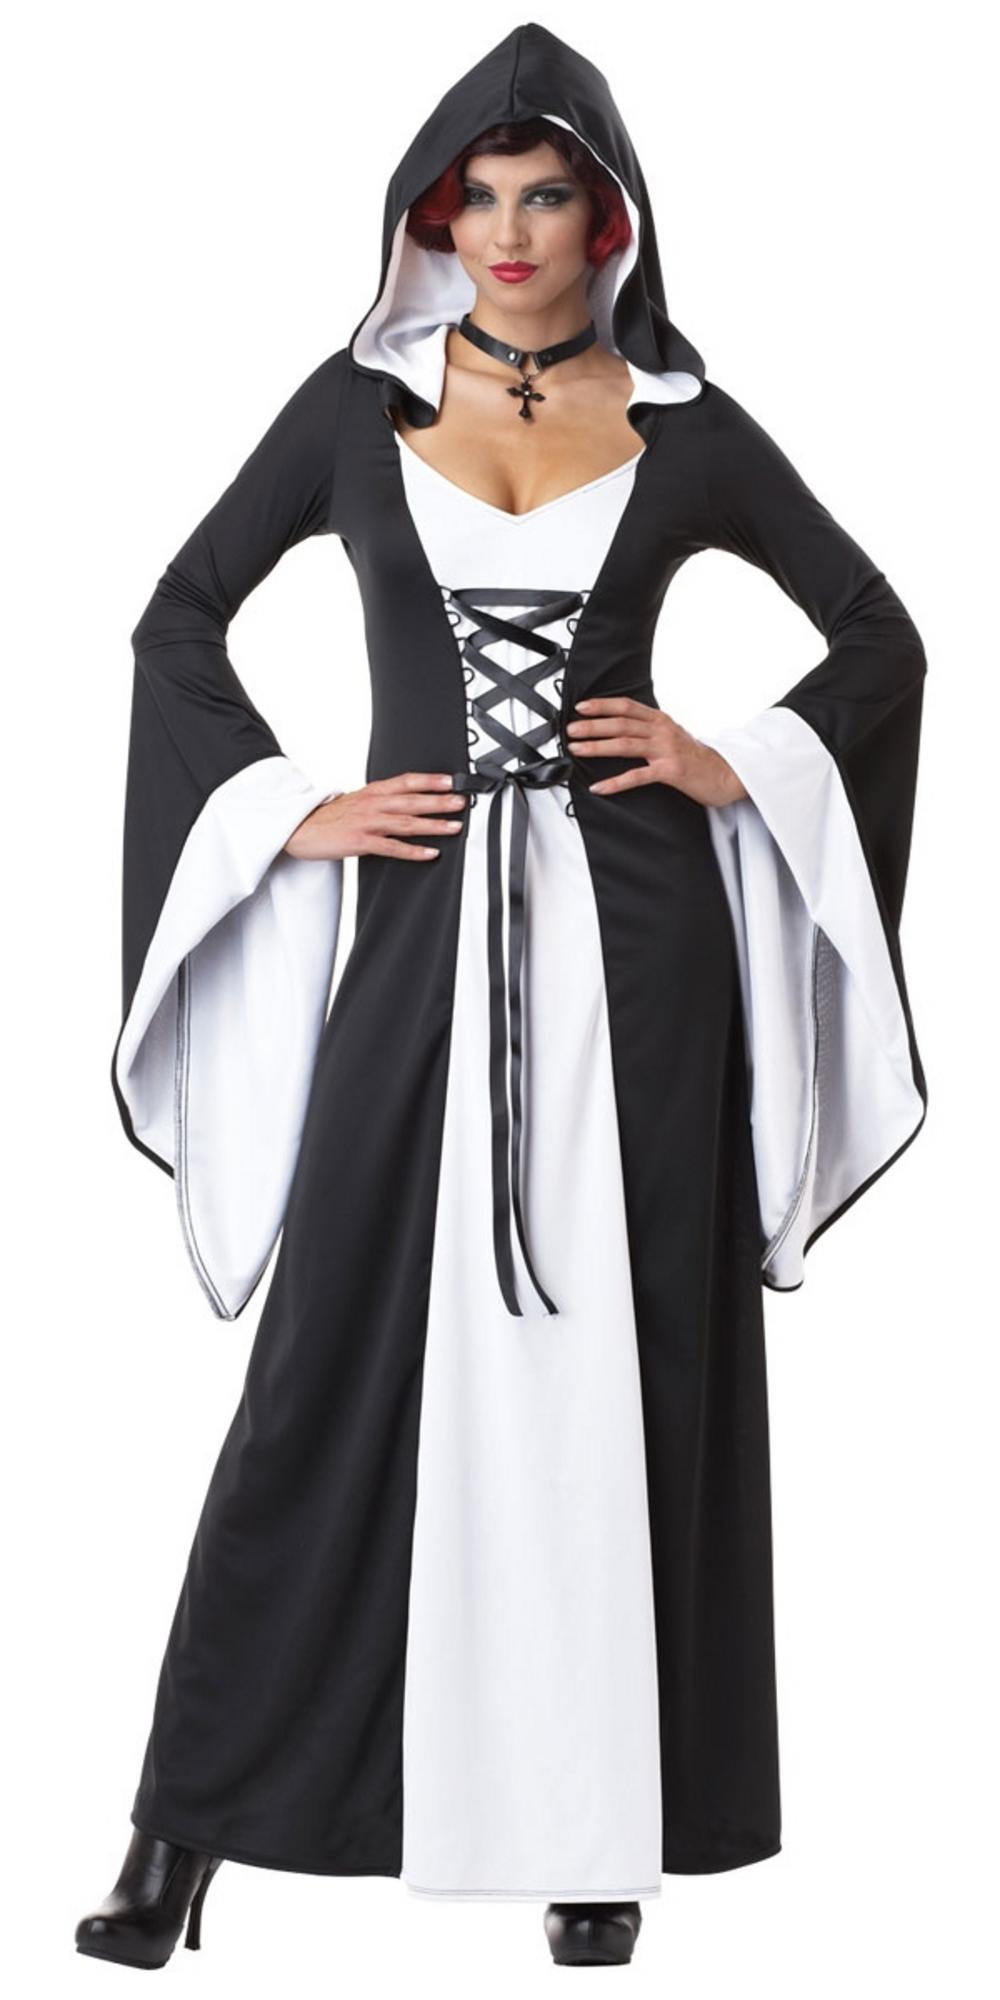 Black and White Hooded Costume